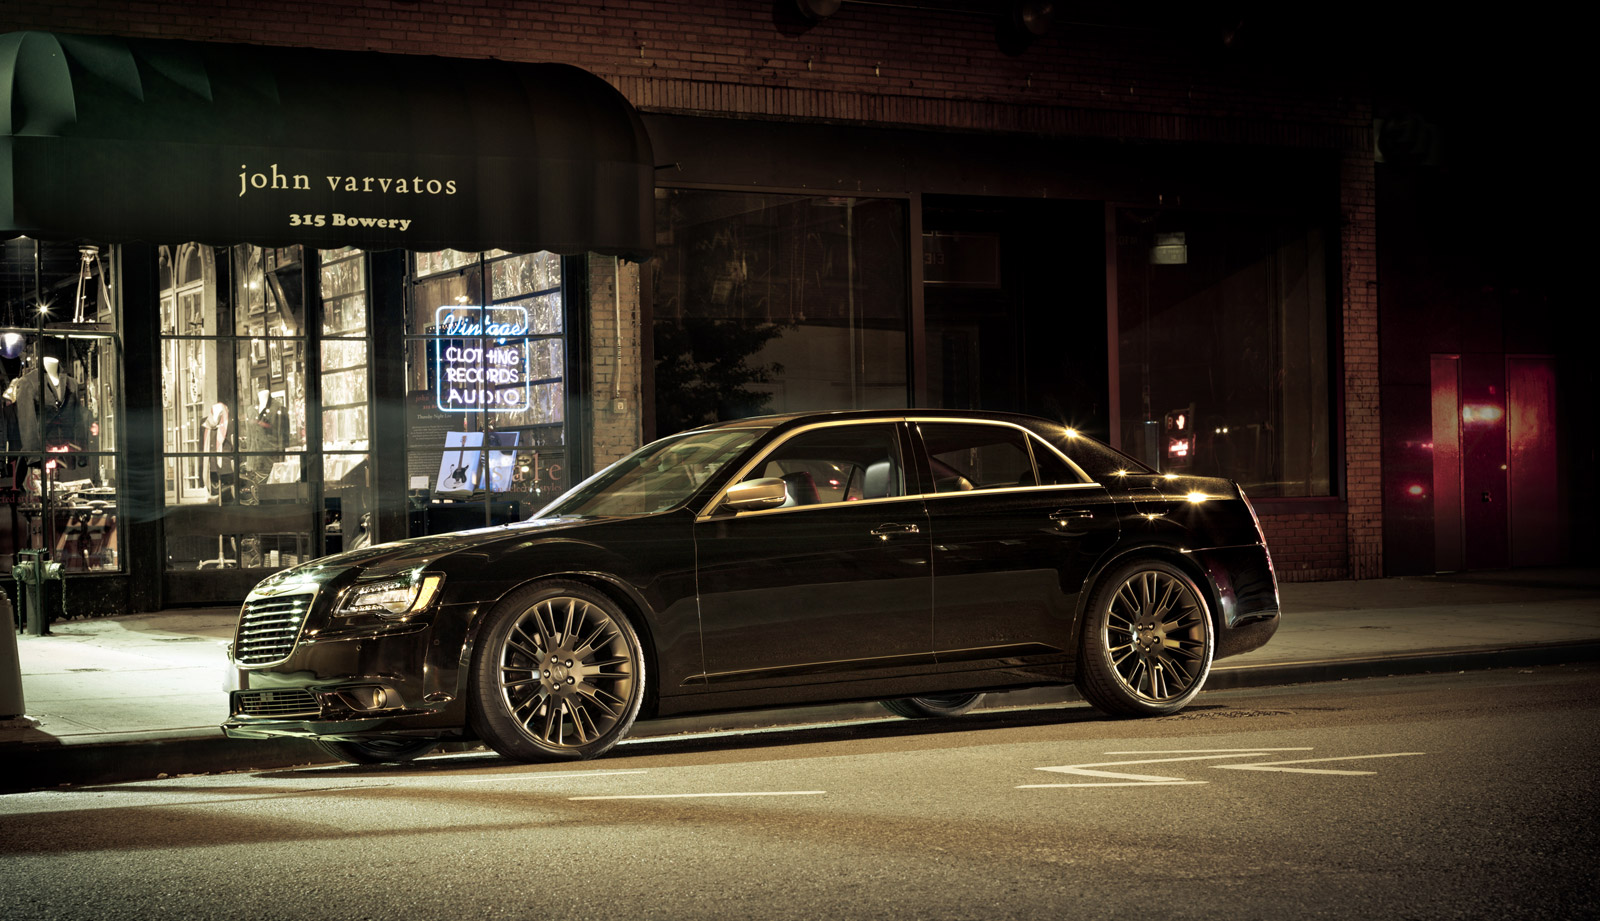 2013 Chrysler 300 C John Varvatos >> Fashion S John Varvatos Designs Two Special Chrysler 300 Sedans